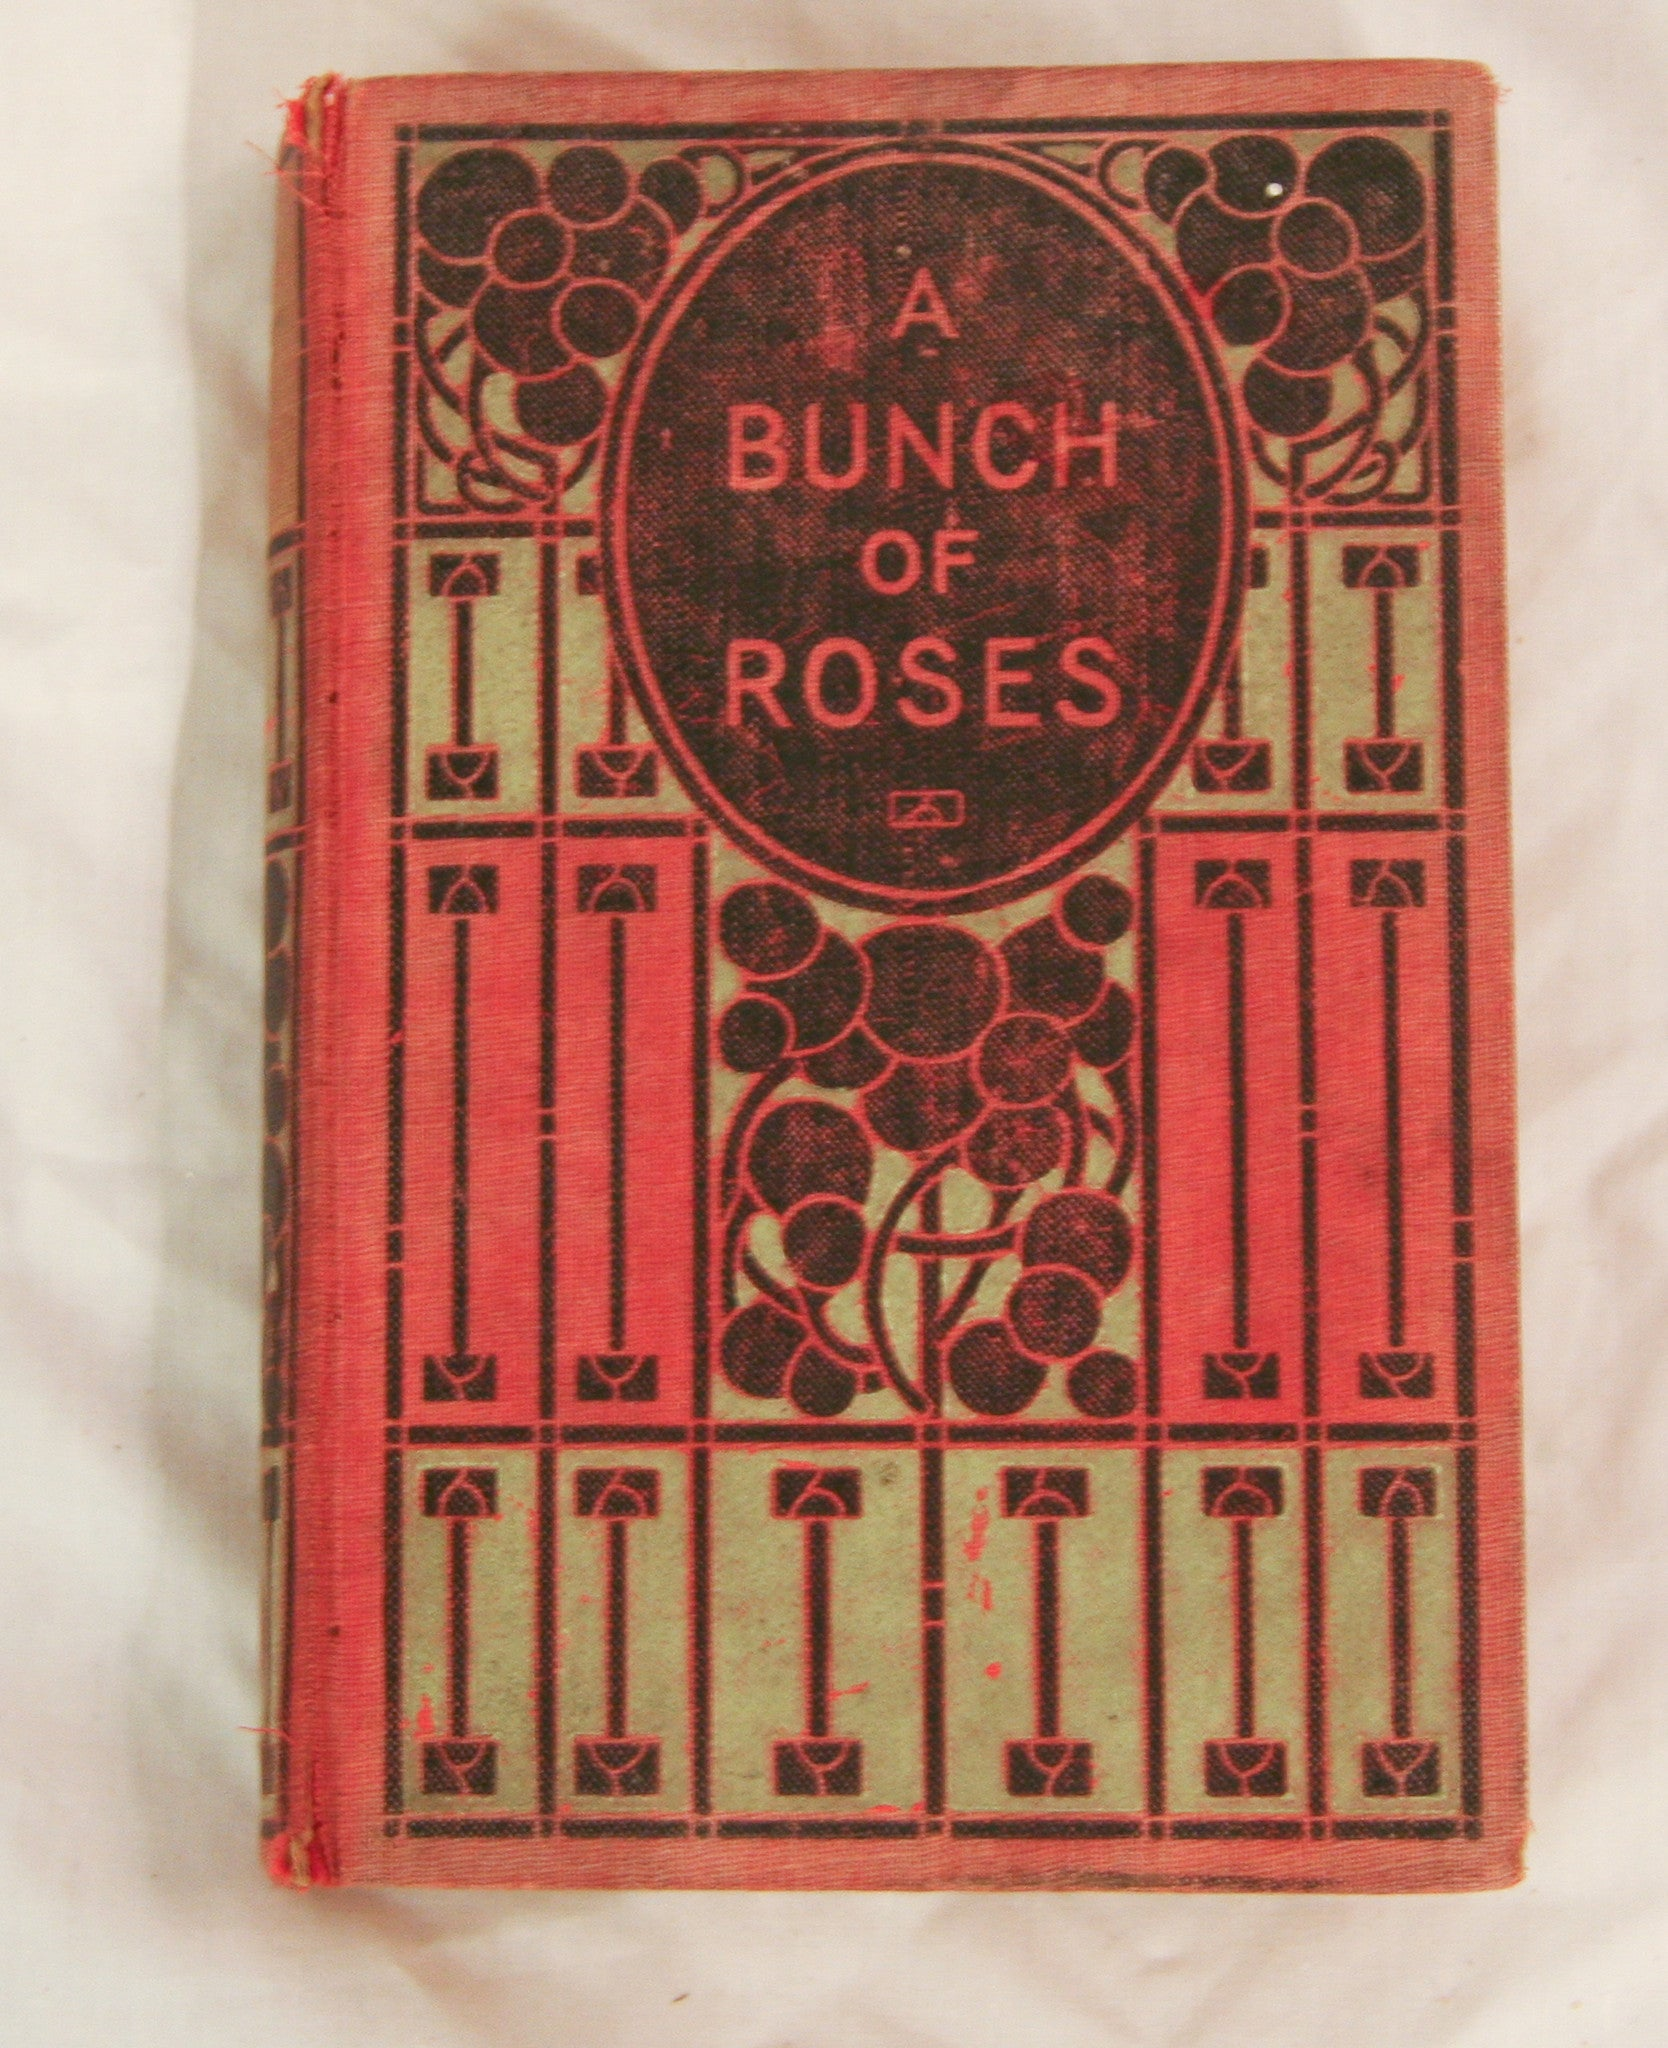 Antique Art Nouveau Bunch of Roses - Decorative Book